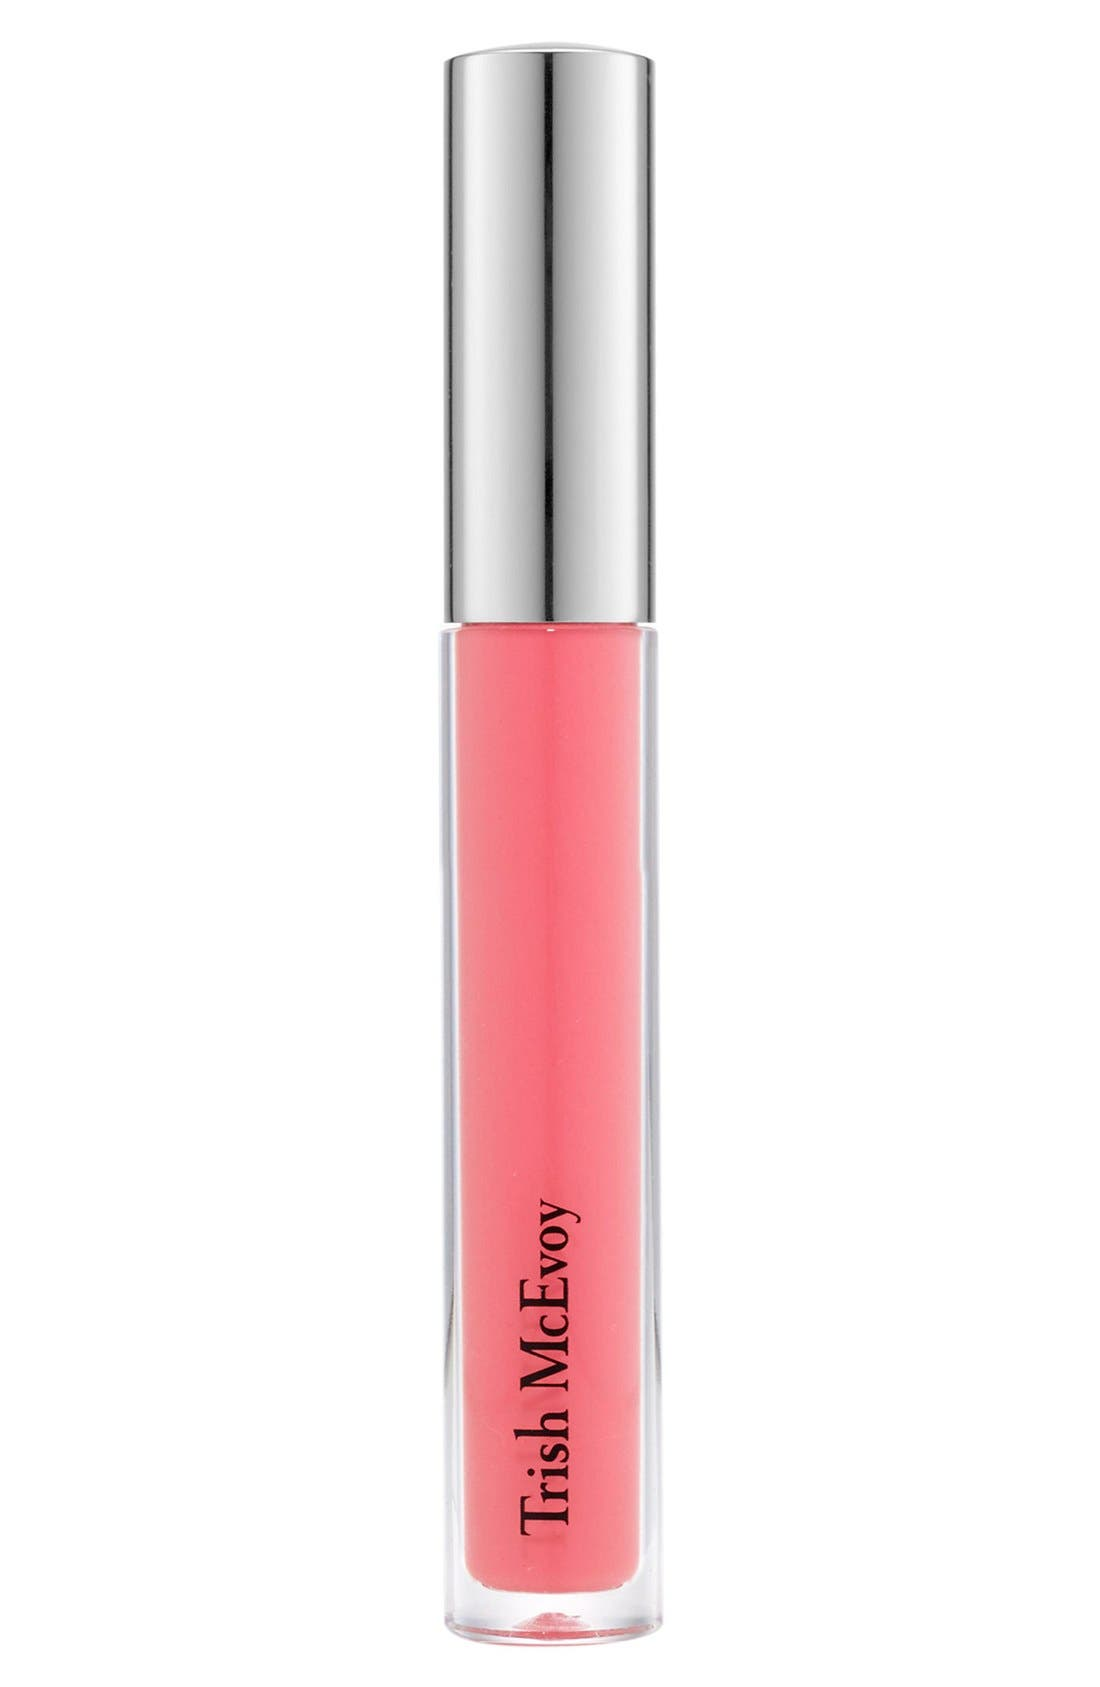 Trish McEvoy Ultra-Wear Lip Gloss